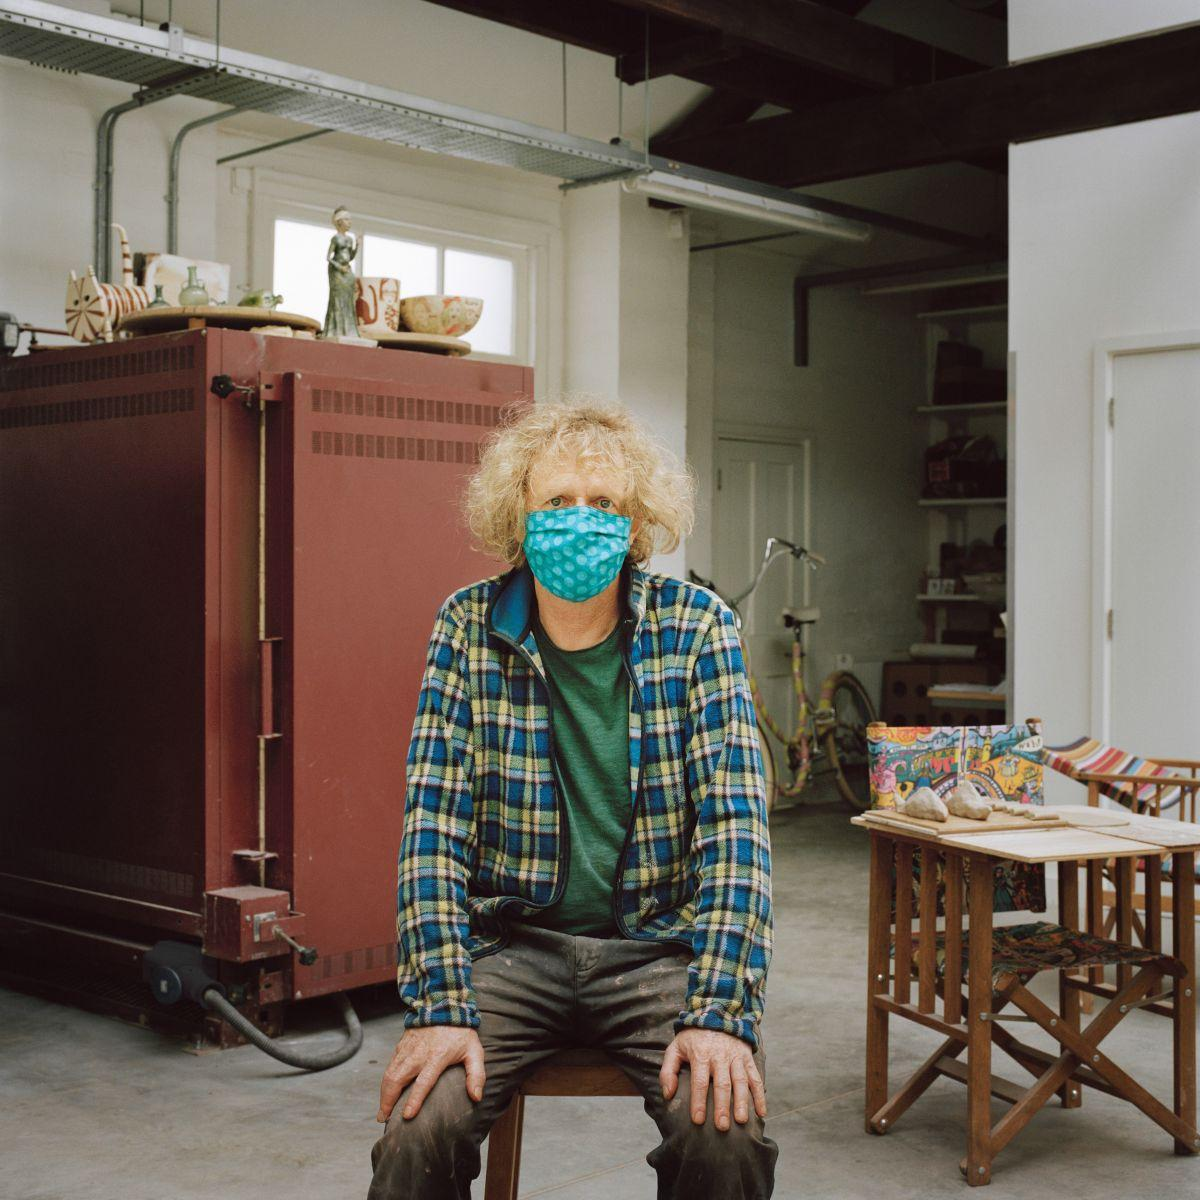 Portait image of Grayson Perry wearing a mask shot for Joanna Vestey's Masked portrait series